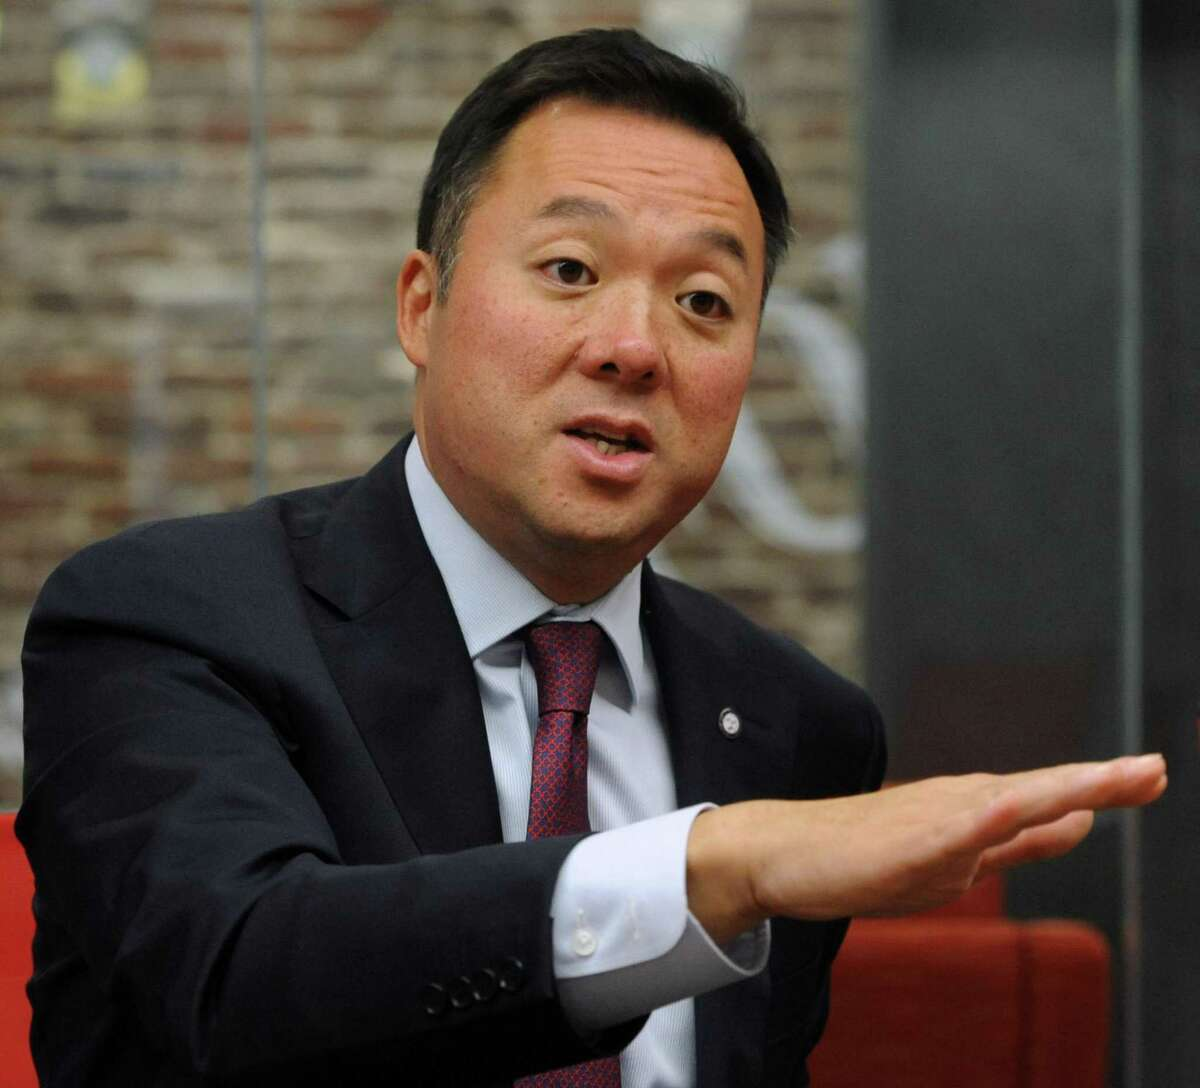 Connecticut Attorney General William Tong says the state will continue to pursue its claims against Purdue Pharma if the company files for bankruptcy.